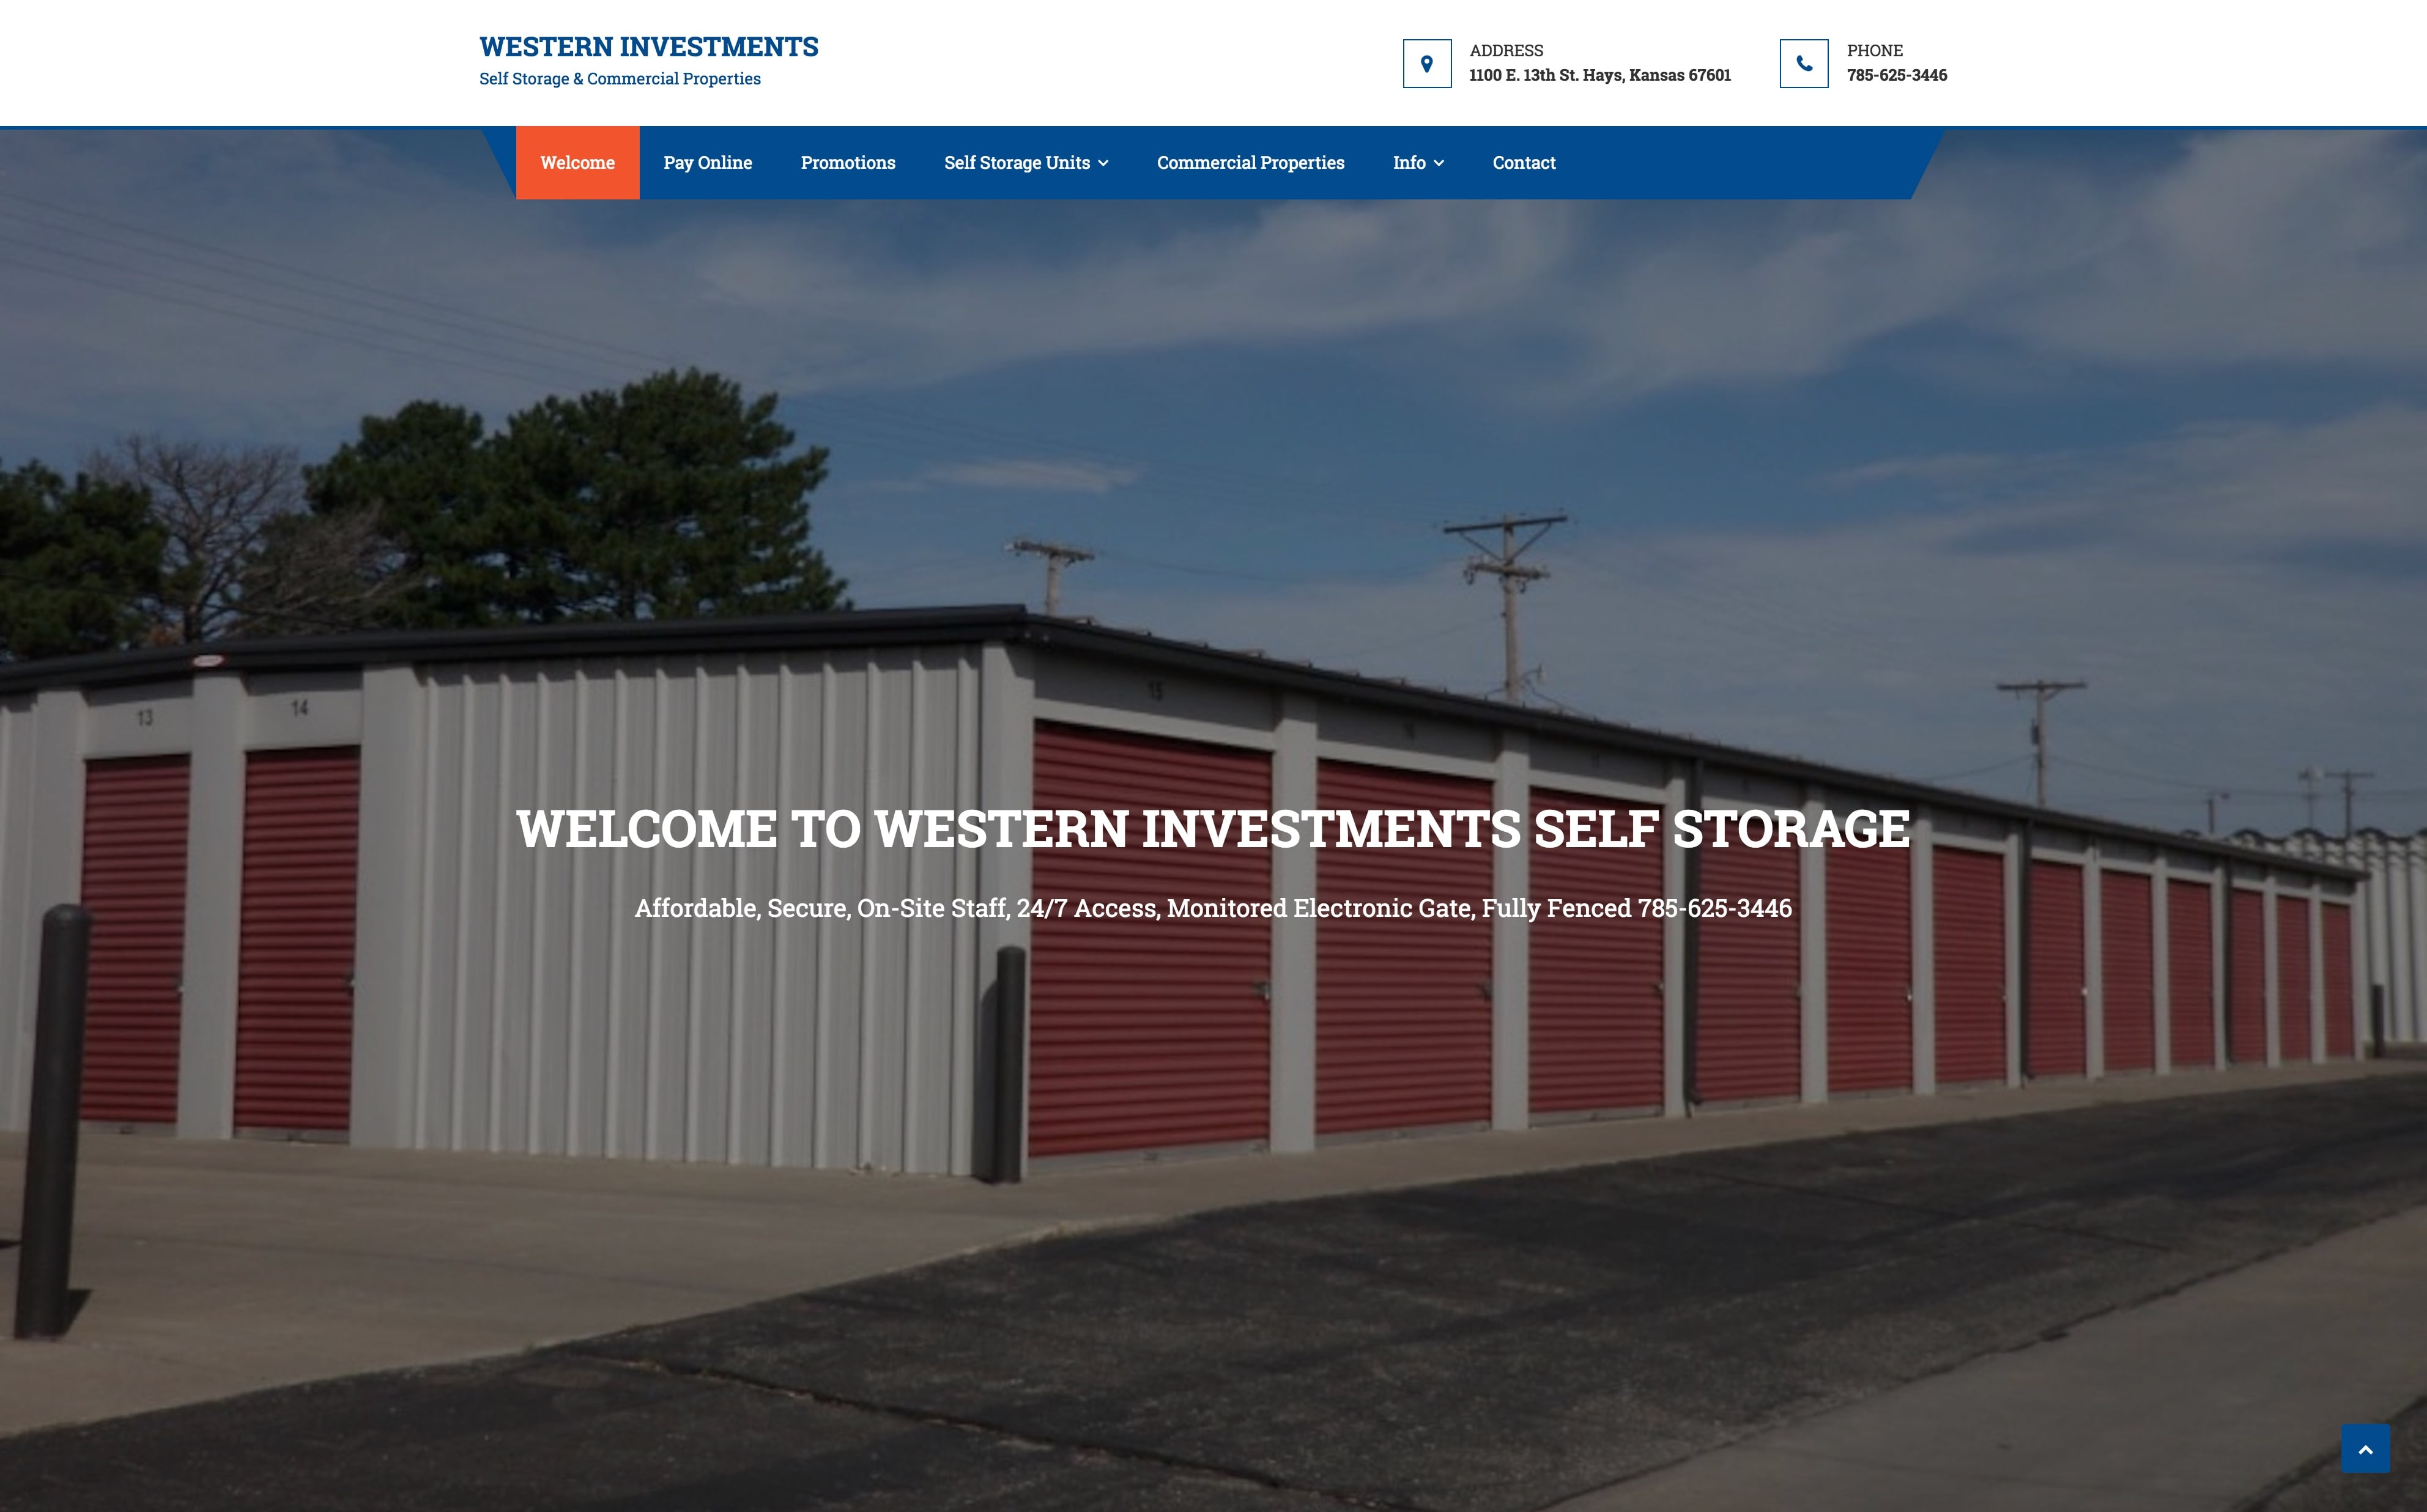 Western Investments